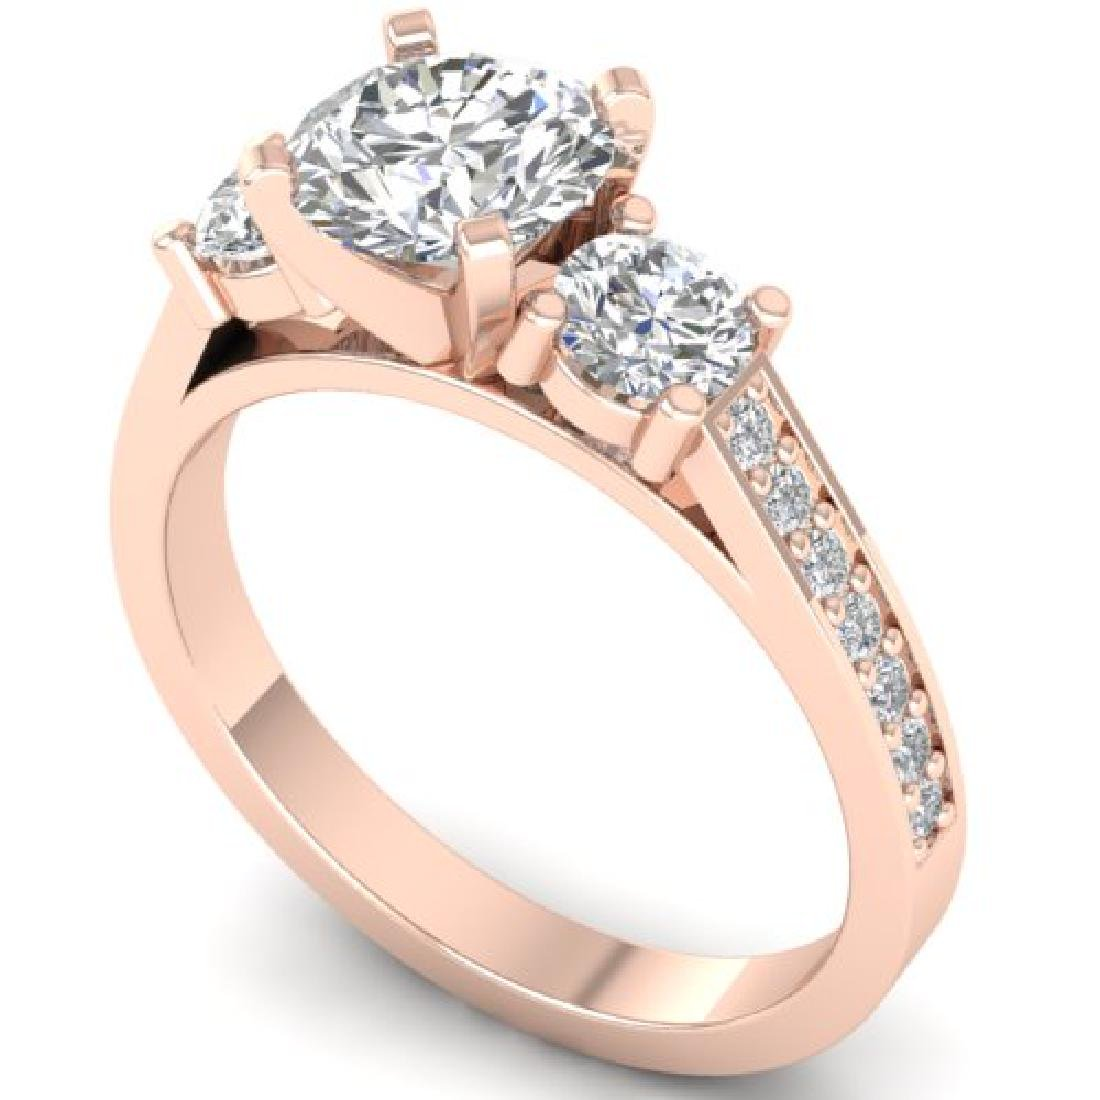 1.75 CTW Certified VS/SI Diamond 3 Stone Ring 18K Rose - 2